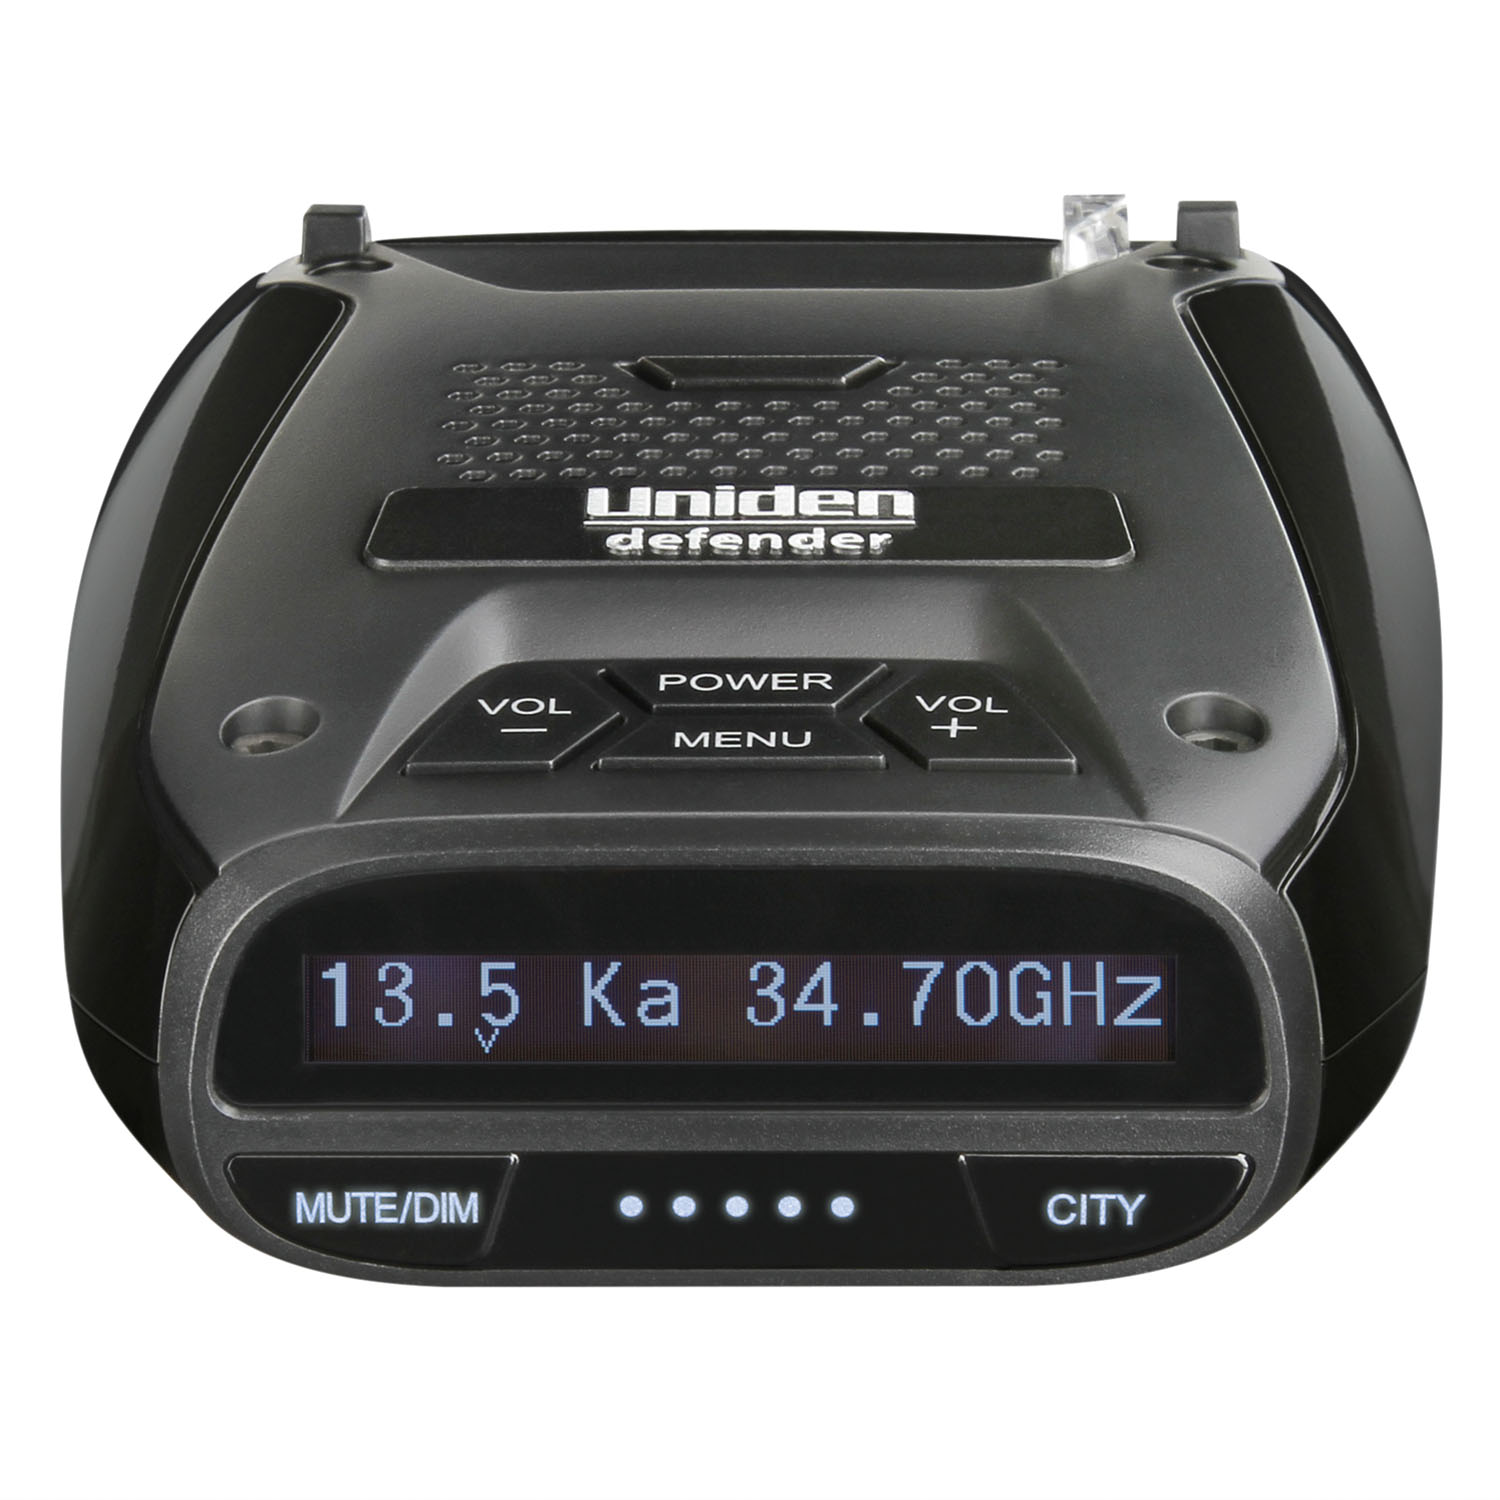 UNIDEN - EXTENDED RANGE RADAR/LASER DETECTOR WITH BUILT IN GPS FOR RED LIGHT CAMERAS, OLED DISPLAY, VOICE ALERT, SIGNAL STRENGTH